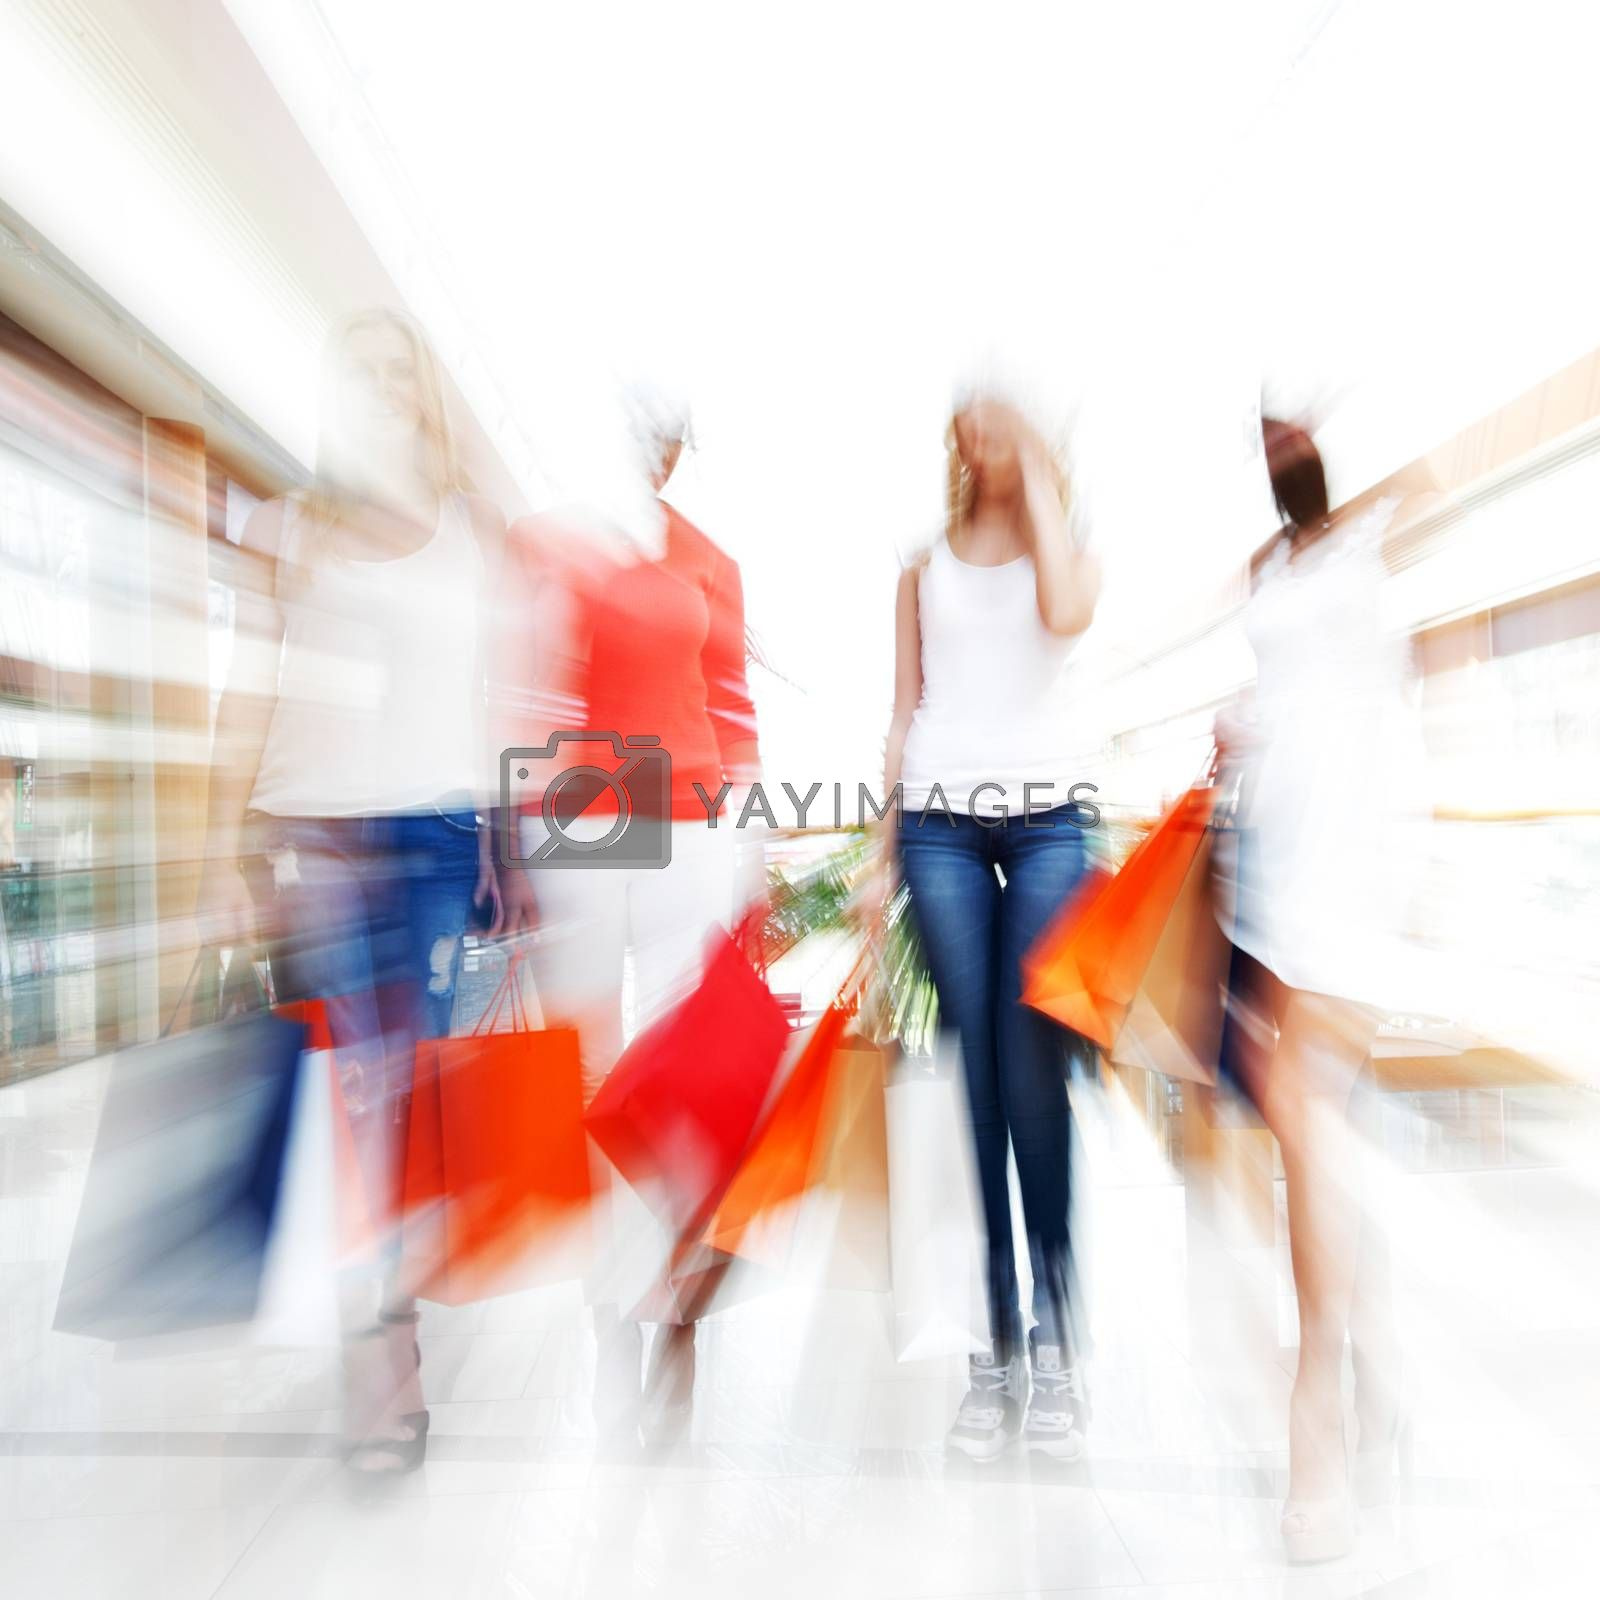 Women walking fast in shopping mall with bags , conceptual abstract background